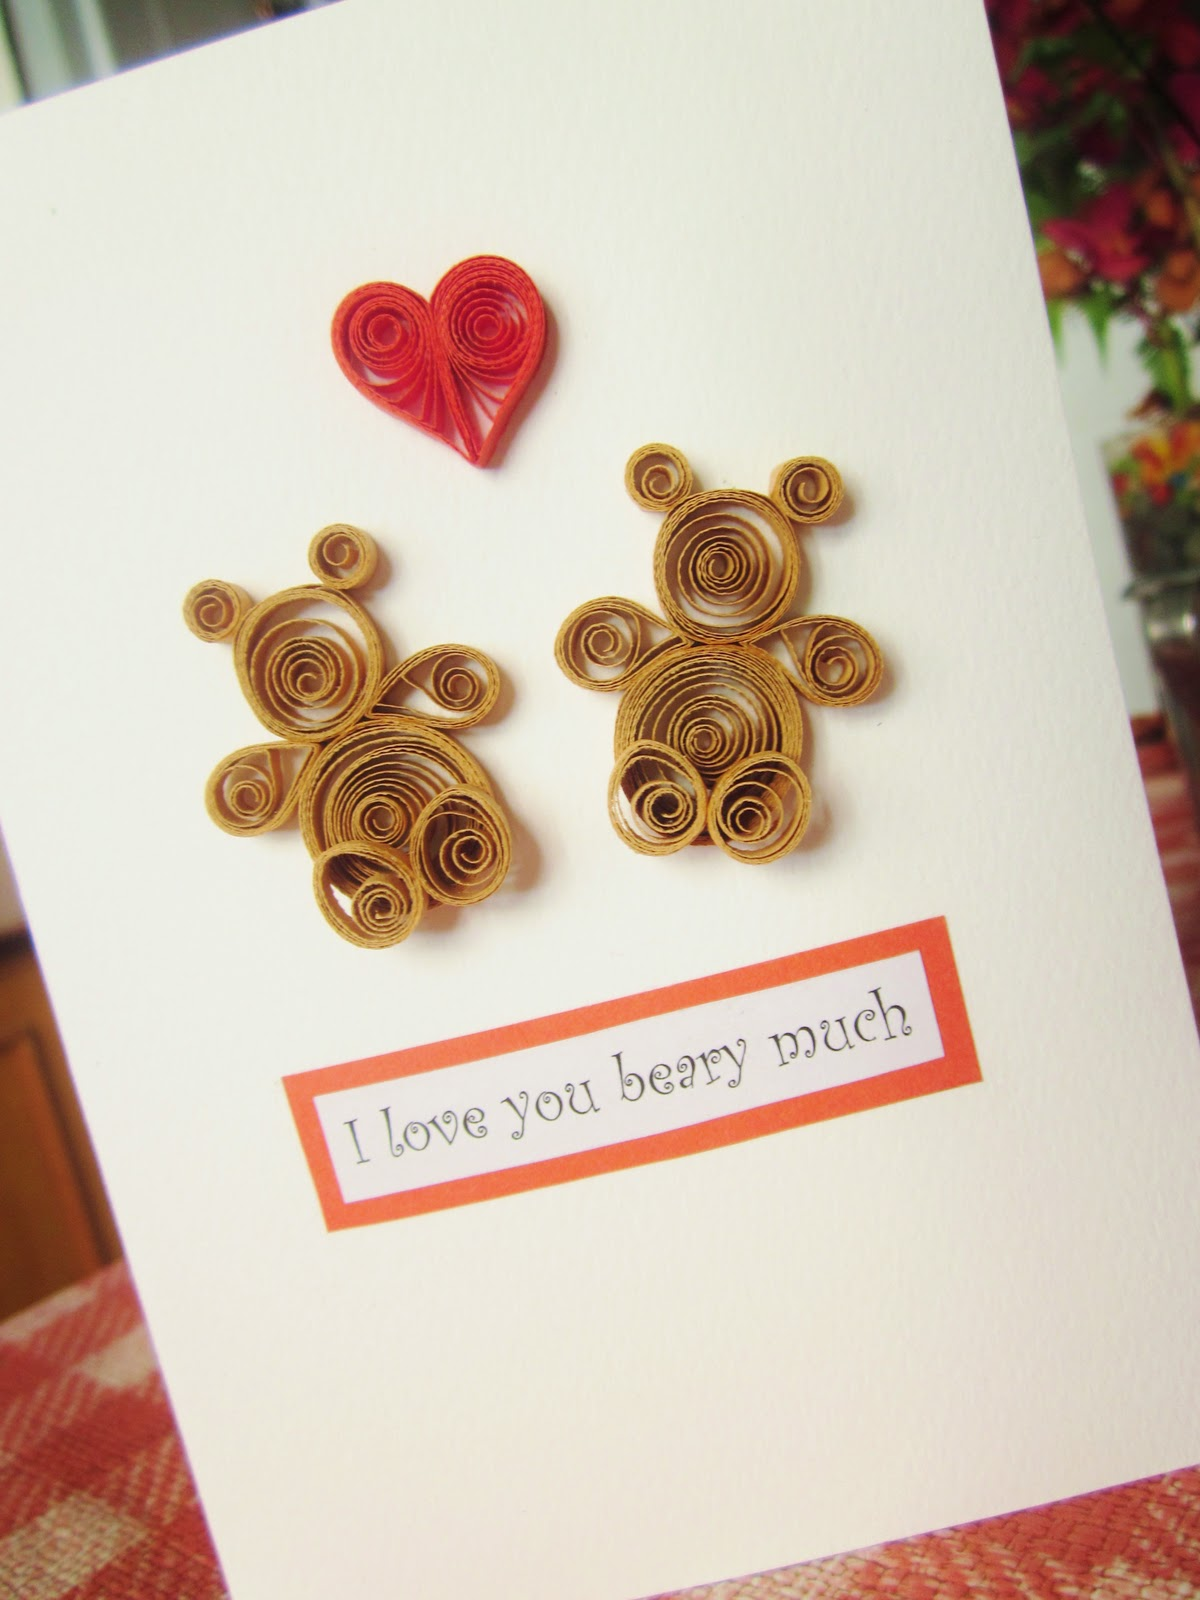 Yuenies Fancies Handmade Quilled Pop Up Cards Bookmarks Gifts